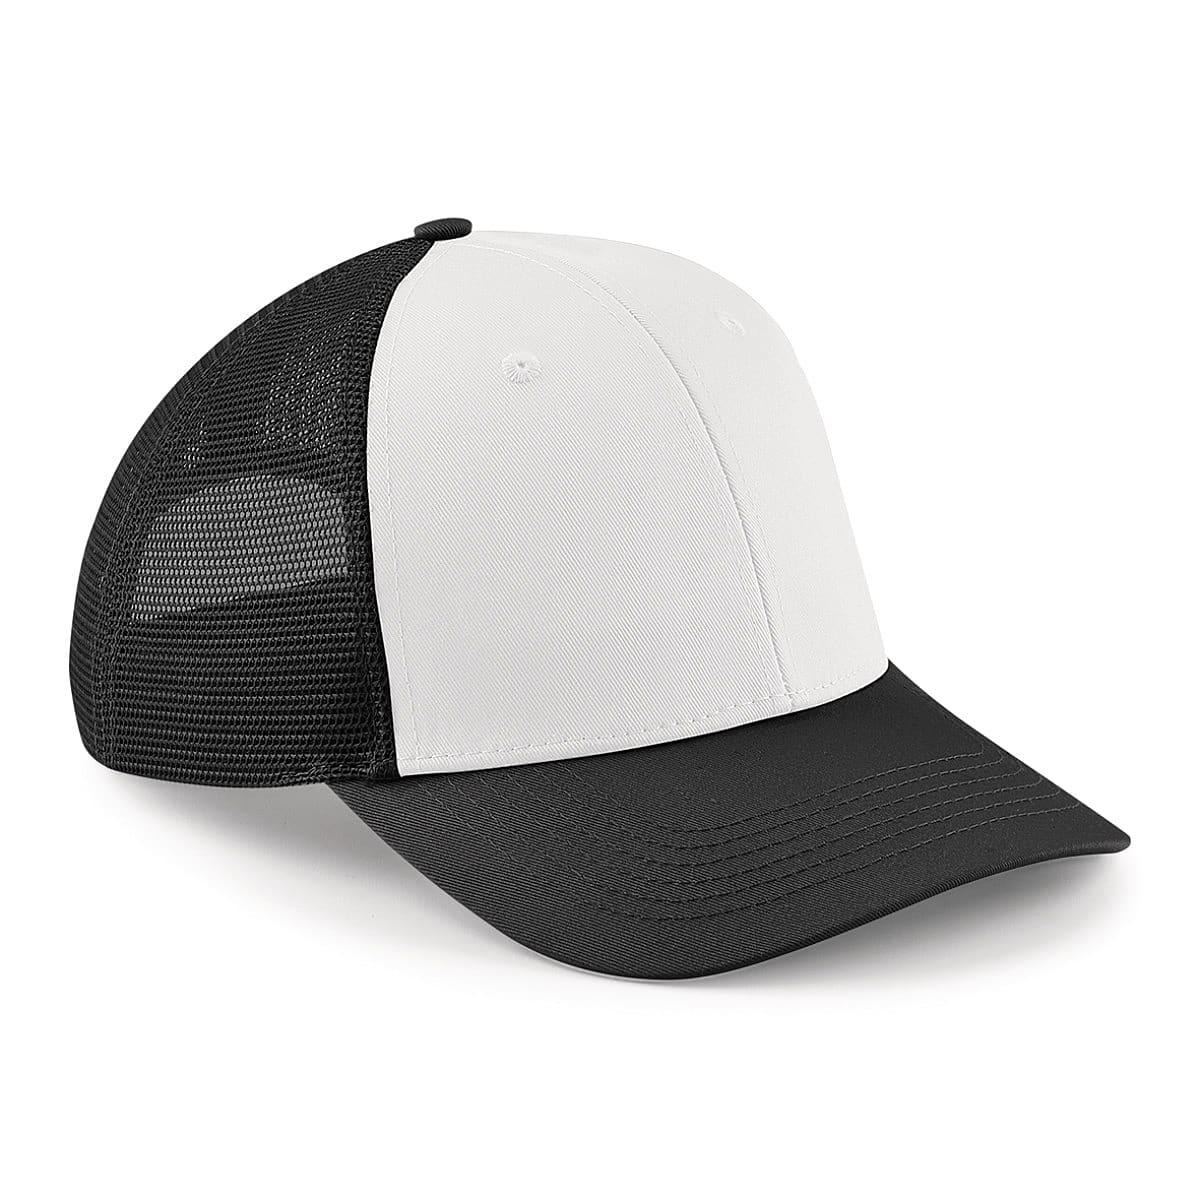 Beechfield 6 Panel Snapback Trucker Cap in Black / White (Product Code: B647)